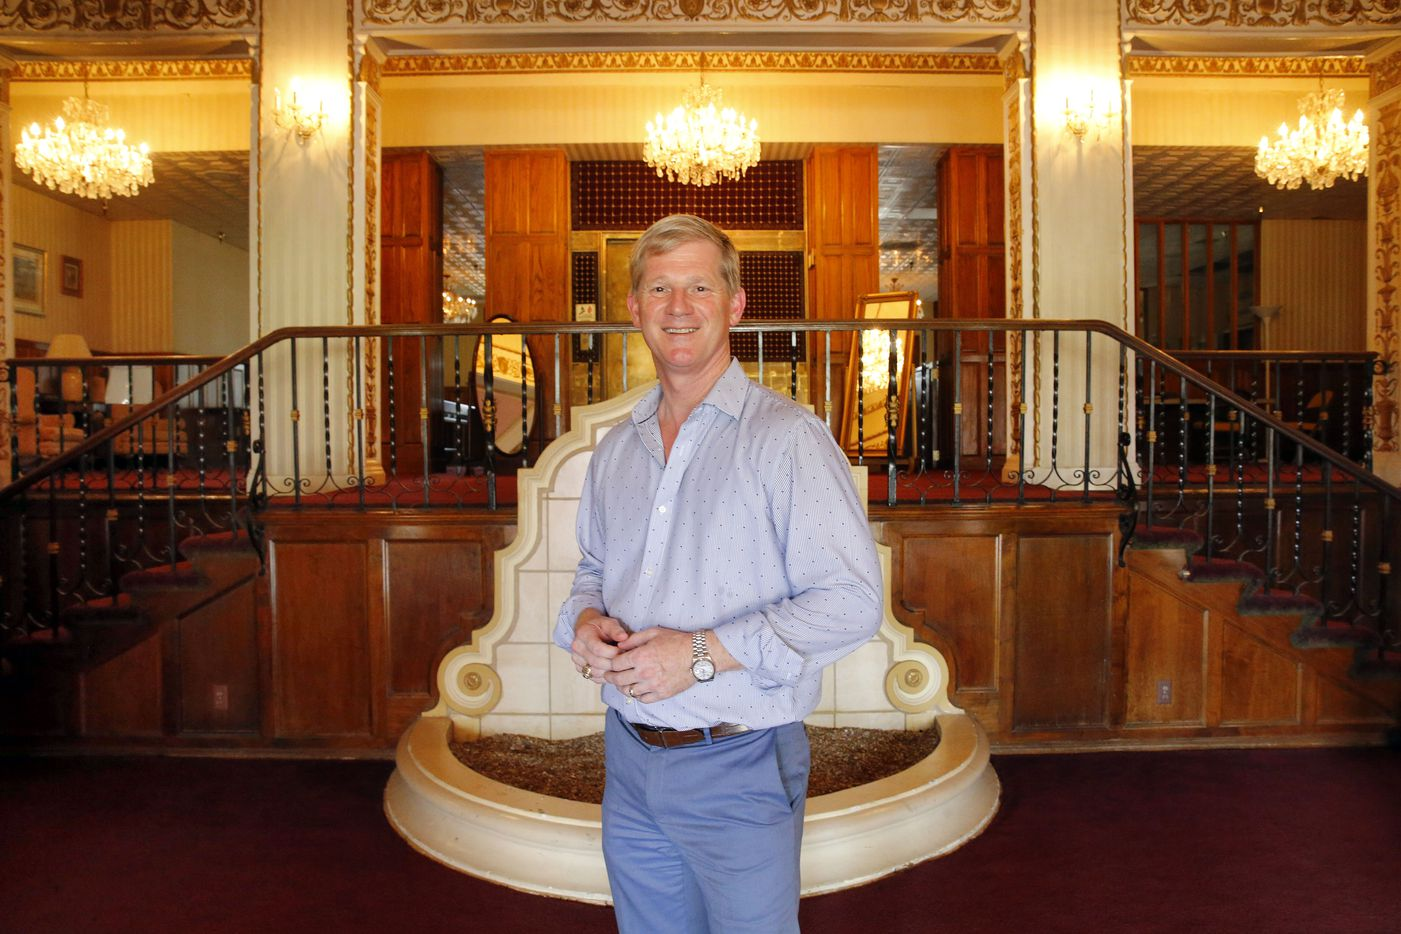 Developer Jim Lake Jr. posed in the lobby of the Ambassador Hotel in June 2016. He was planning to turn the hotel into apartments that would have been about 330 square feet.